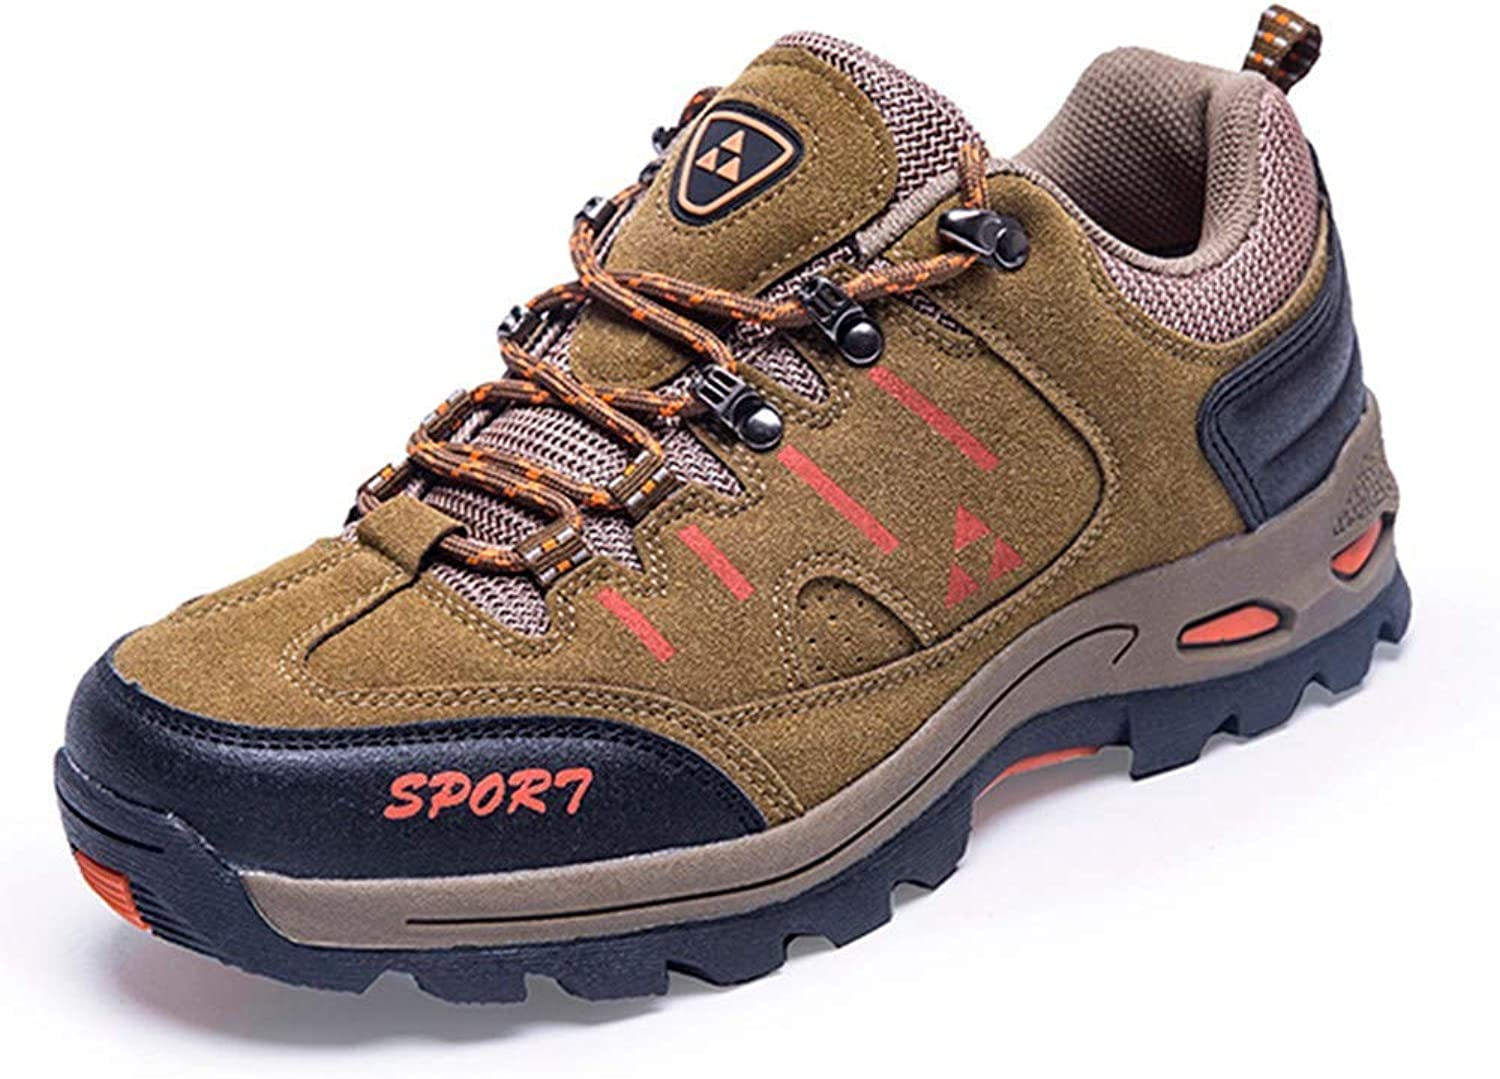 Dsx Hiking shoes Men Mountain Climbing shoes Trekking Waterproof Breathable Sneakers Hiking shoes Men's shoes, brown, 9.5UK